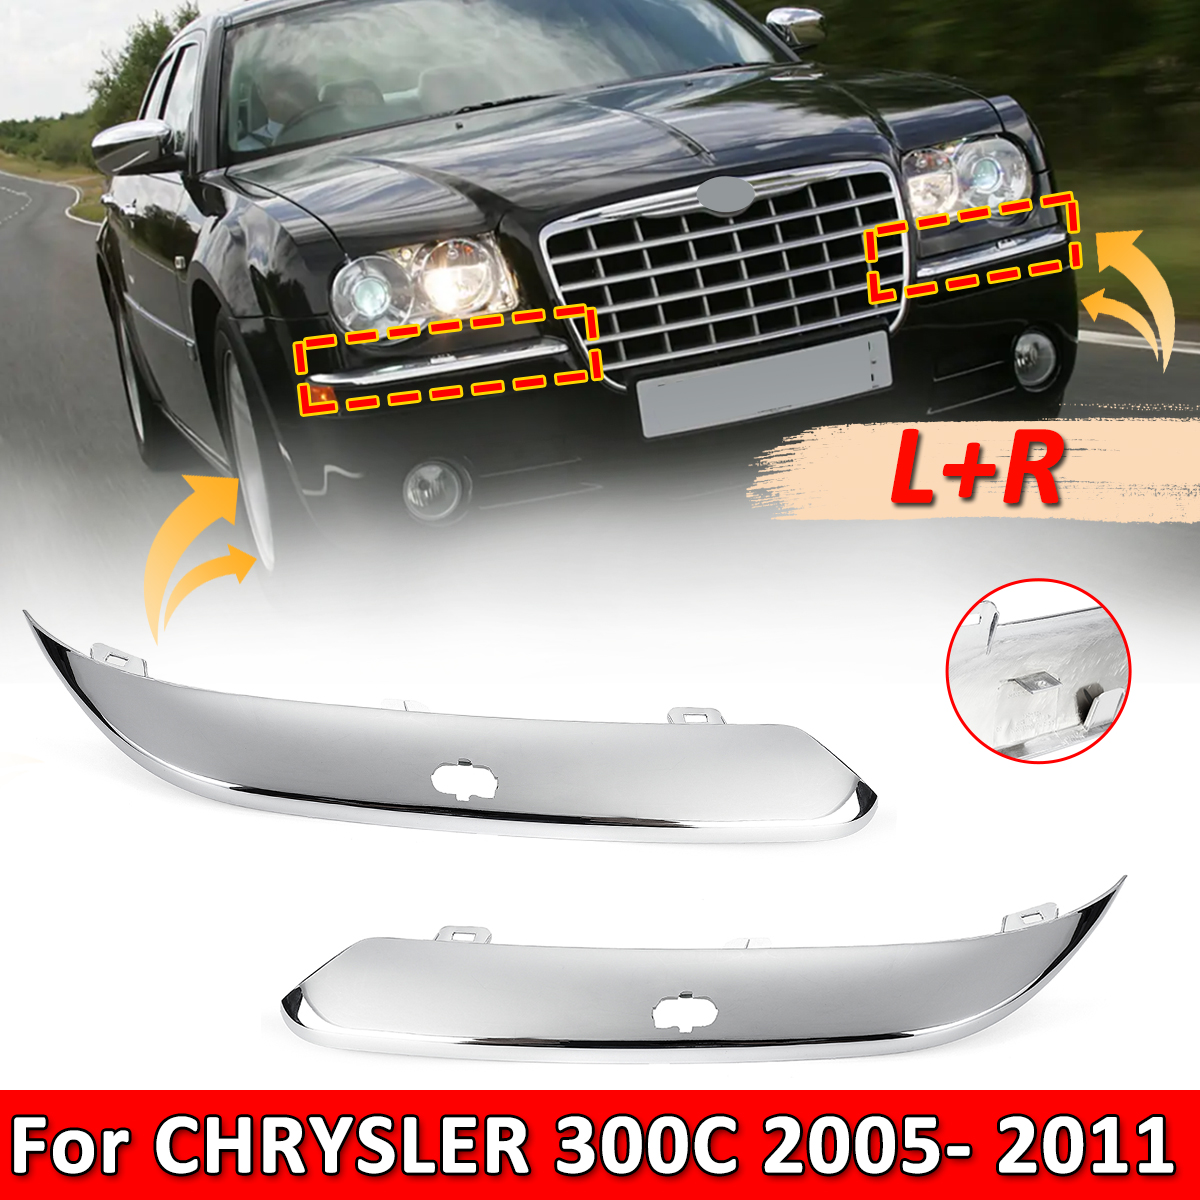 NEW Front Bumper Cover For Chrysler 300 WITH MOULDING HOLE